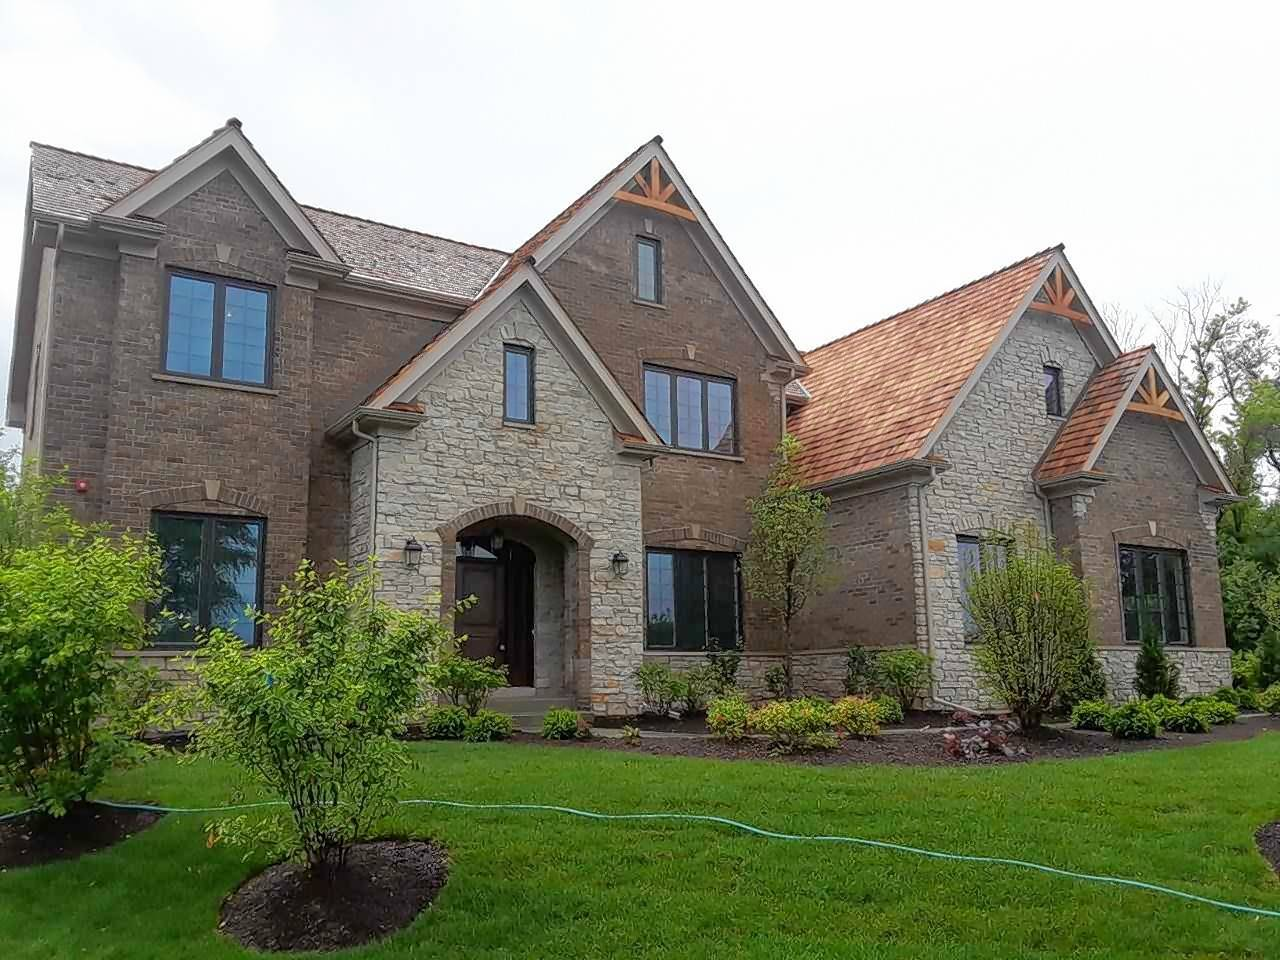 Profits from the sale of this custom home in Long Grove will be donated to an organization that helps wounded veterans